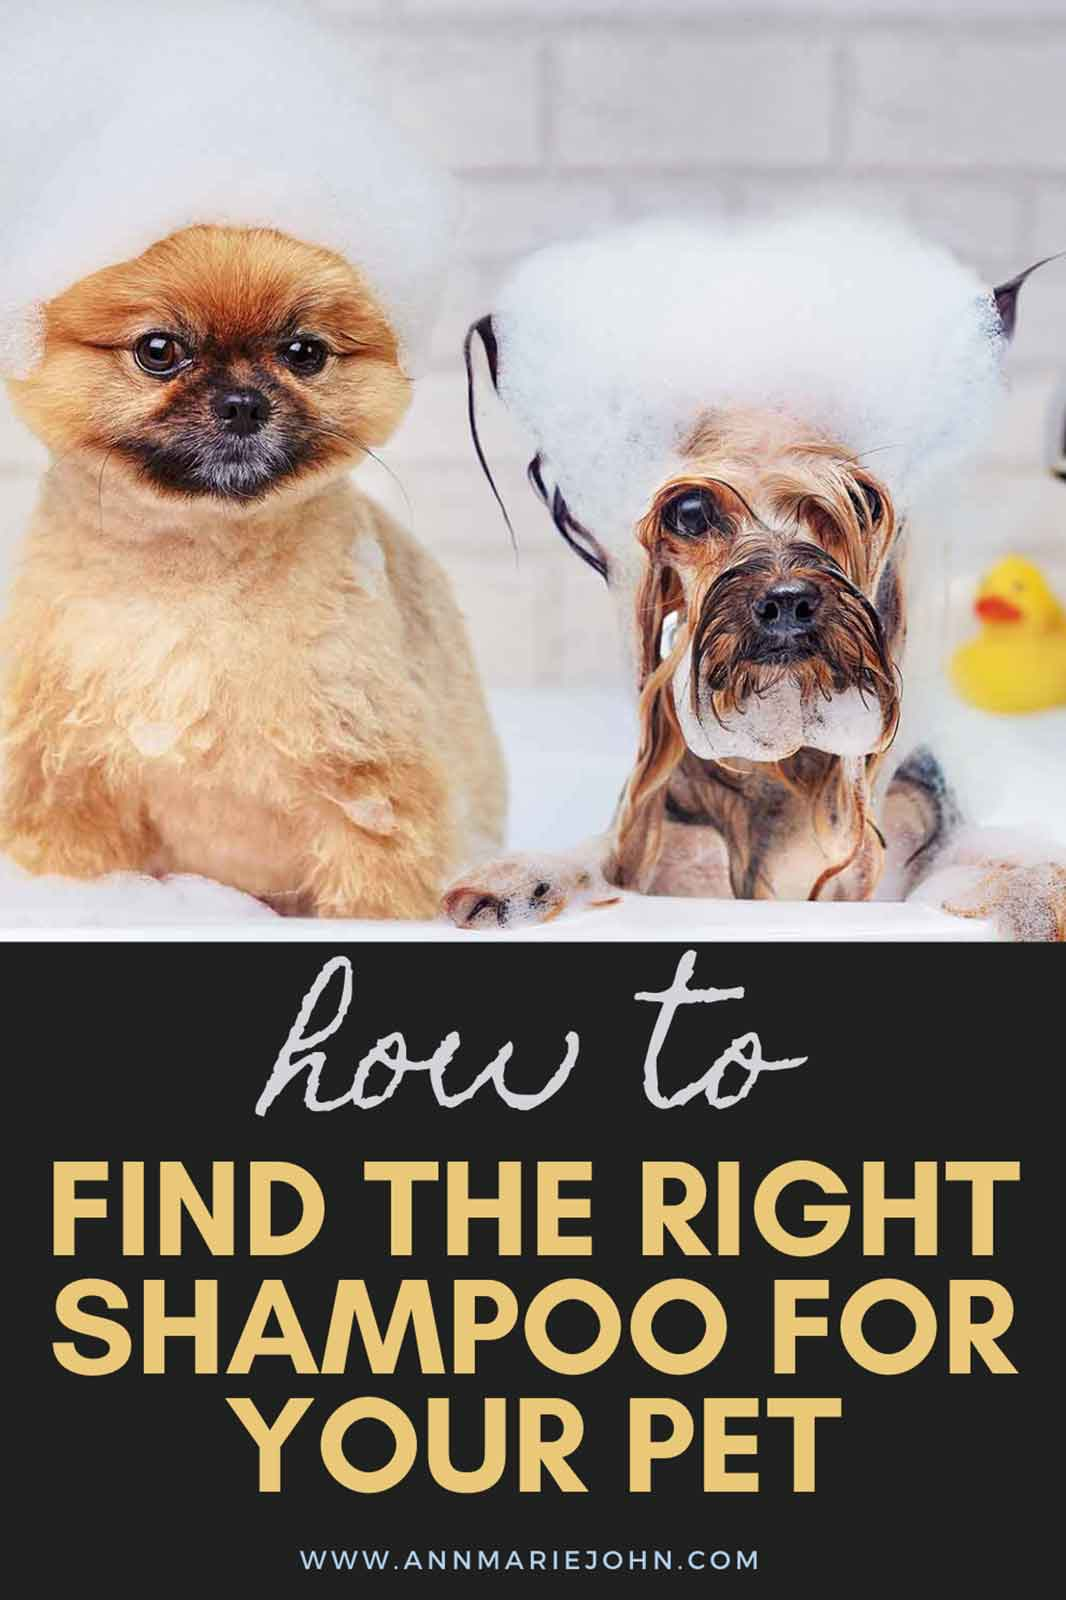 How To Find The Right Shampoo For Your Pet